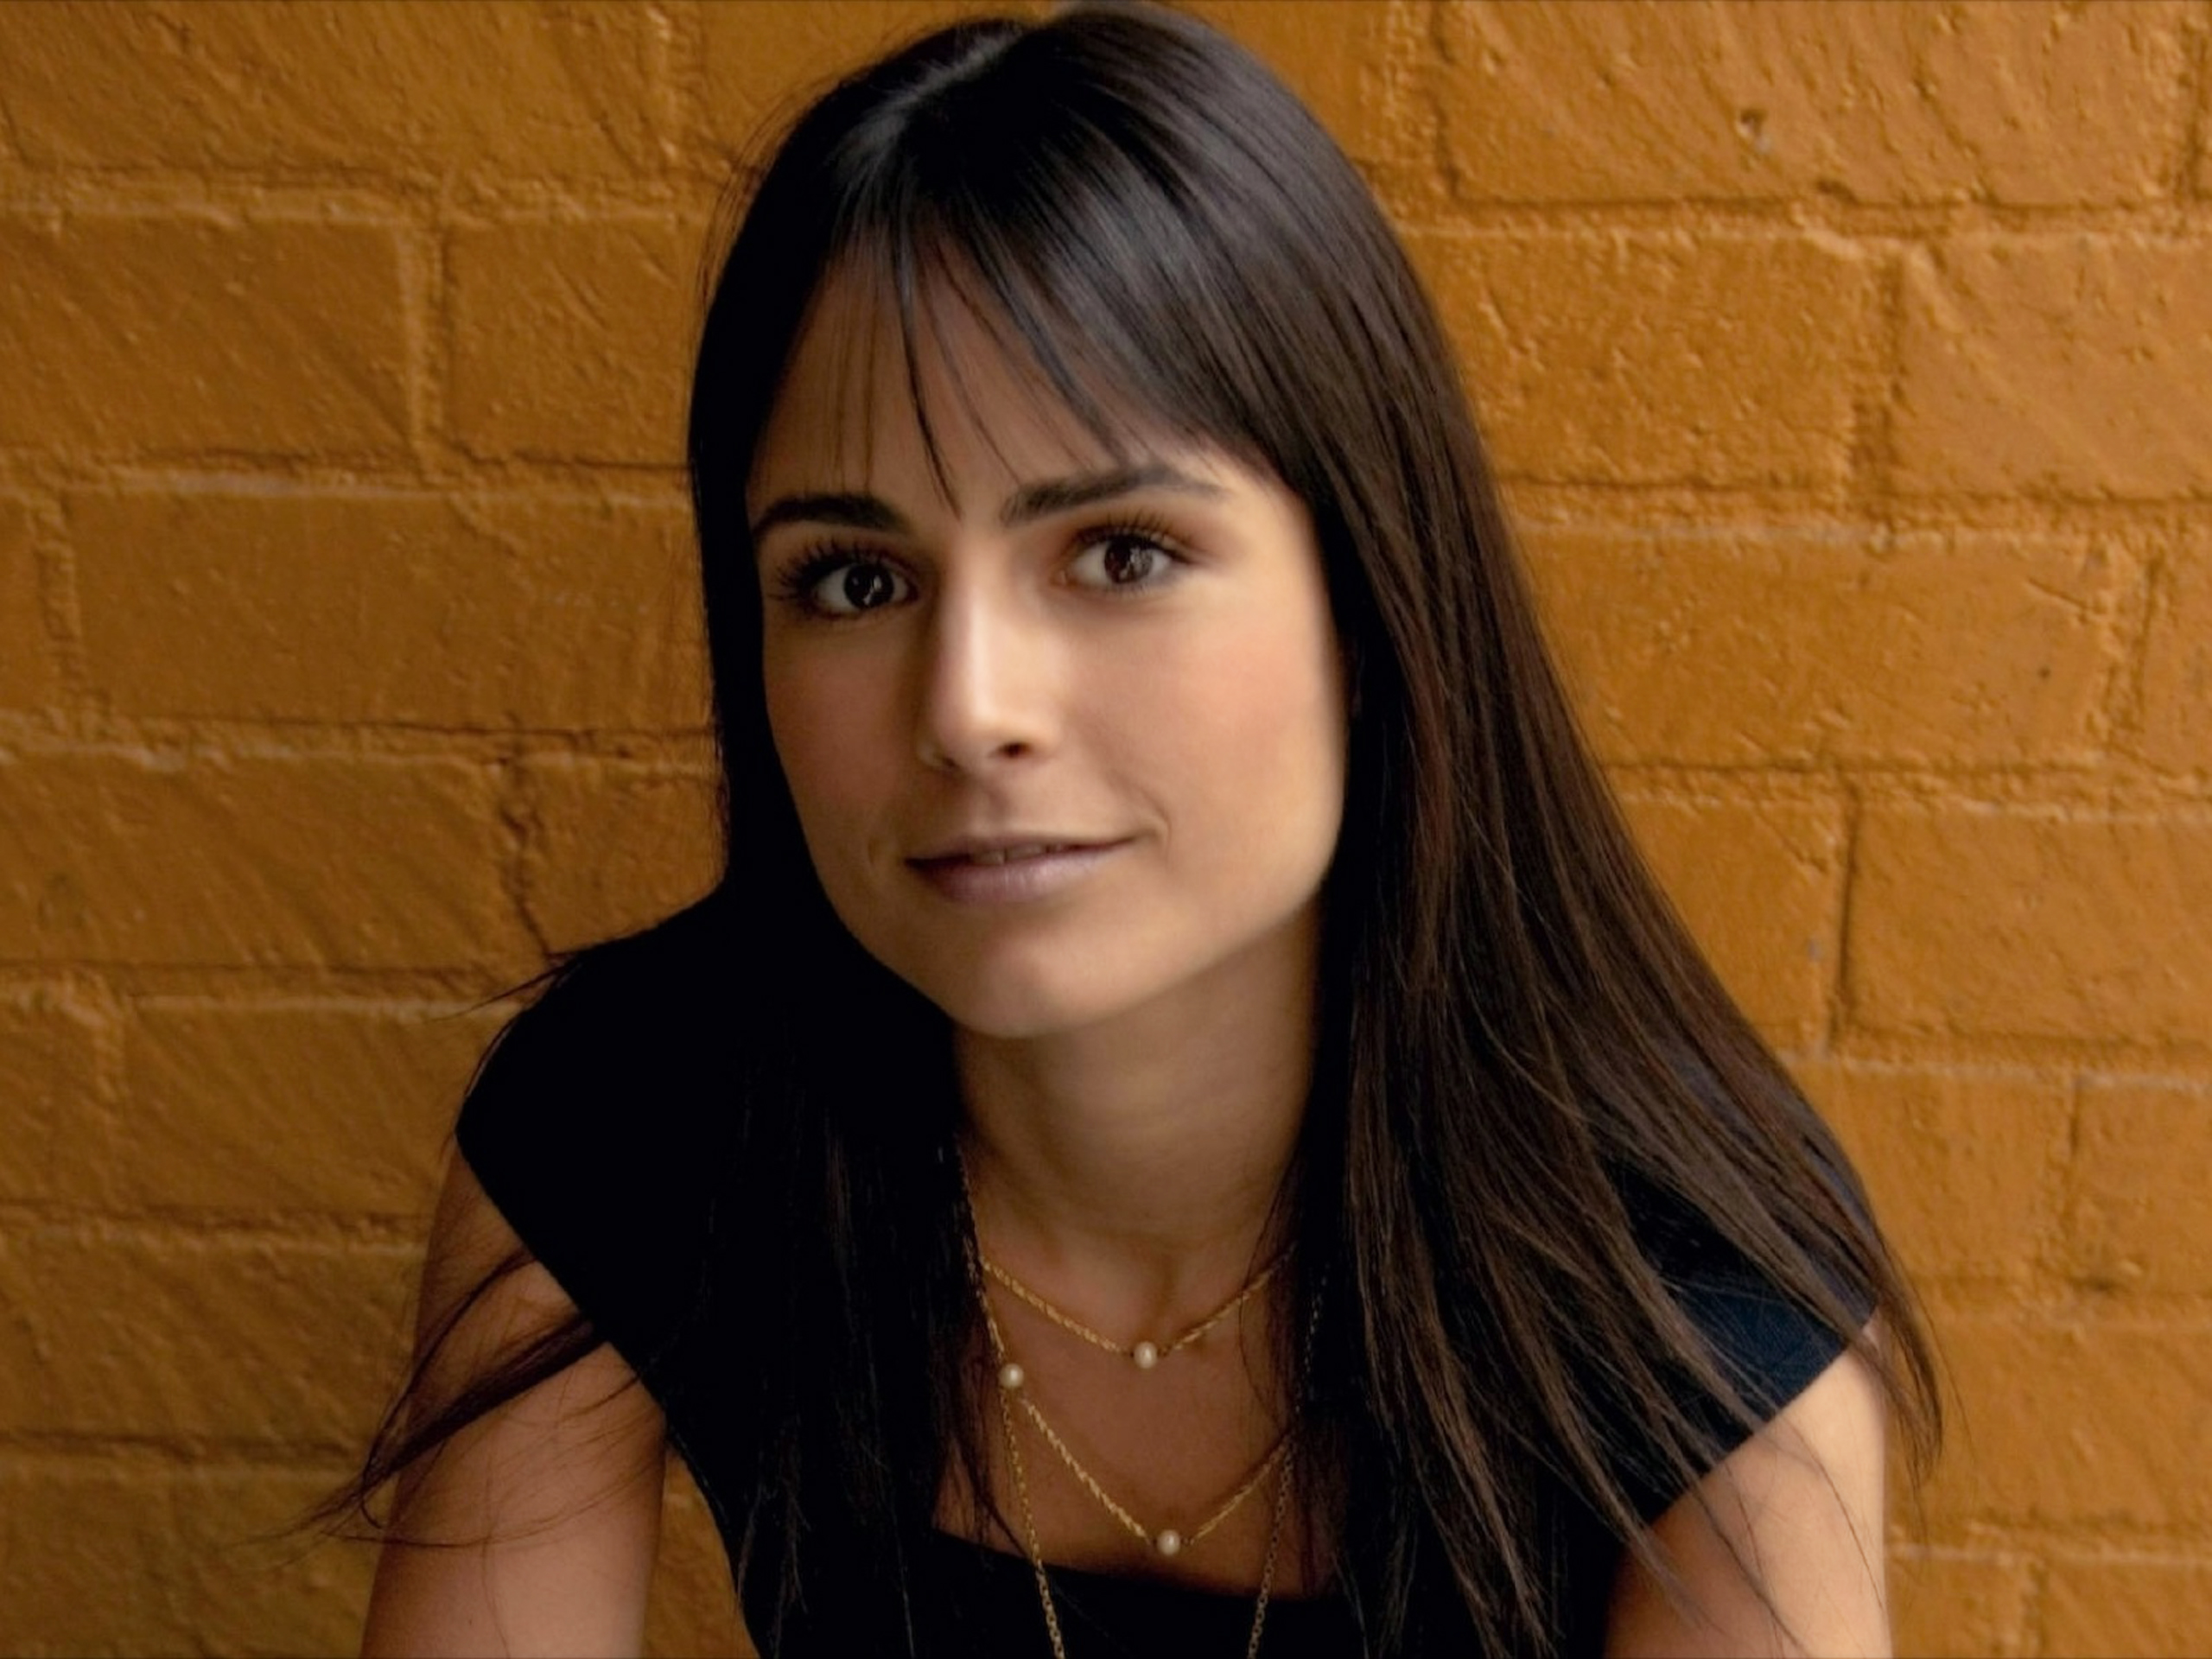 Jordana Brewster Wallpaper Desktop Image